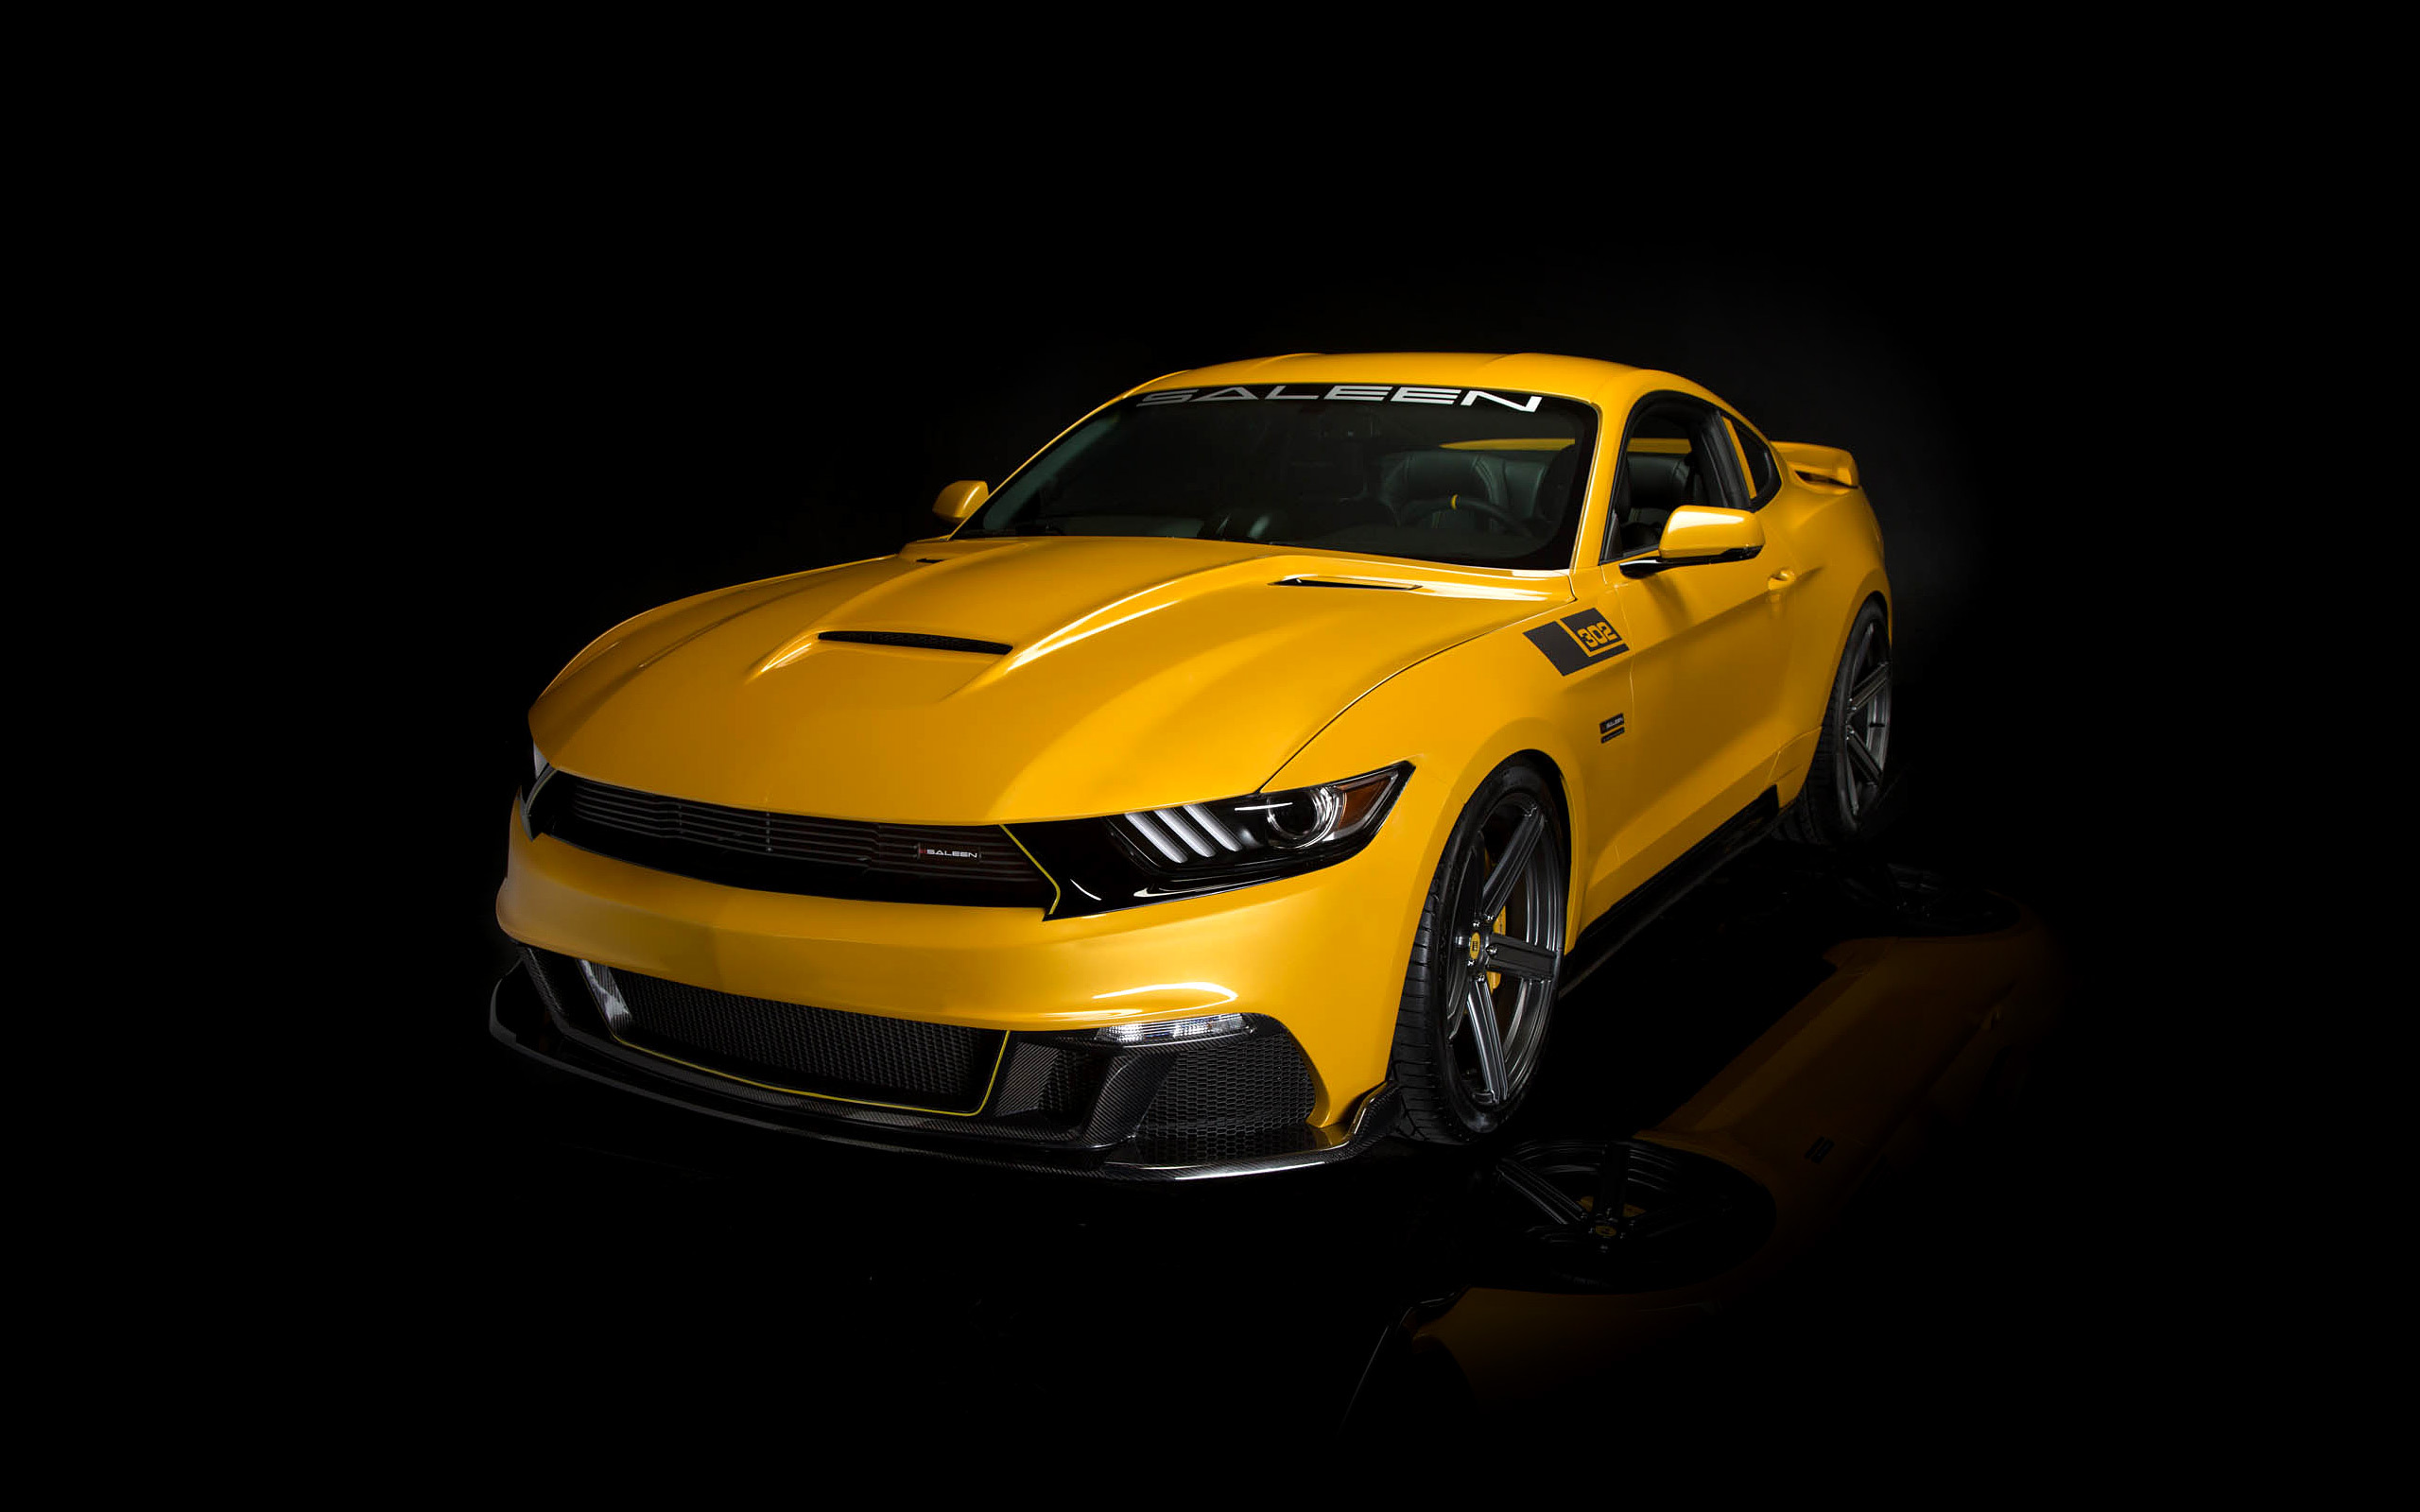 2015 Saleen Mustang S302 Black Label Wallpaper HD Car Wallpapers 2560x1600